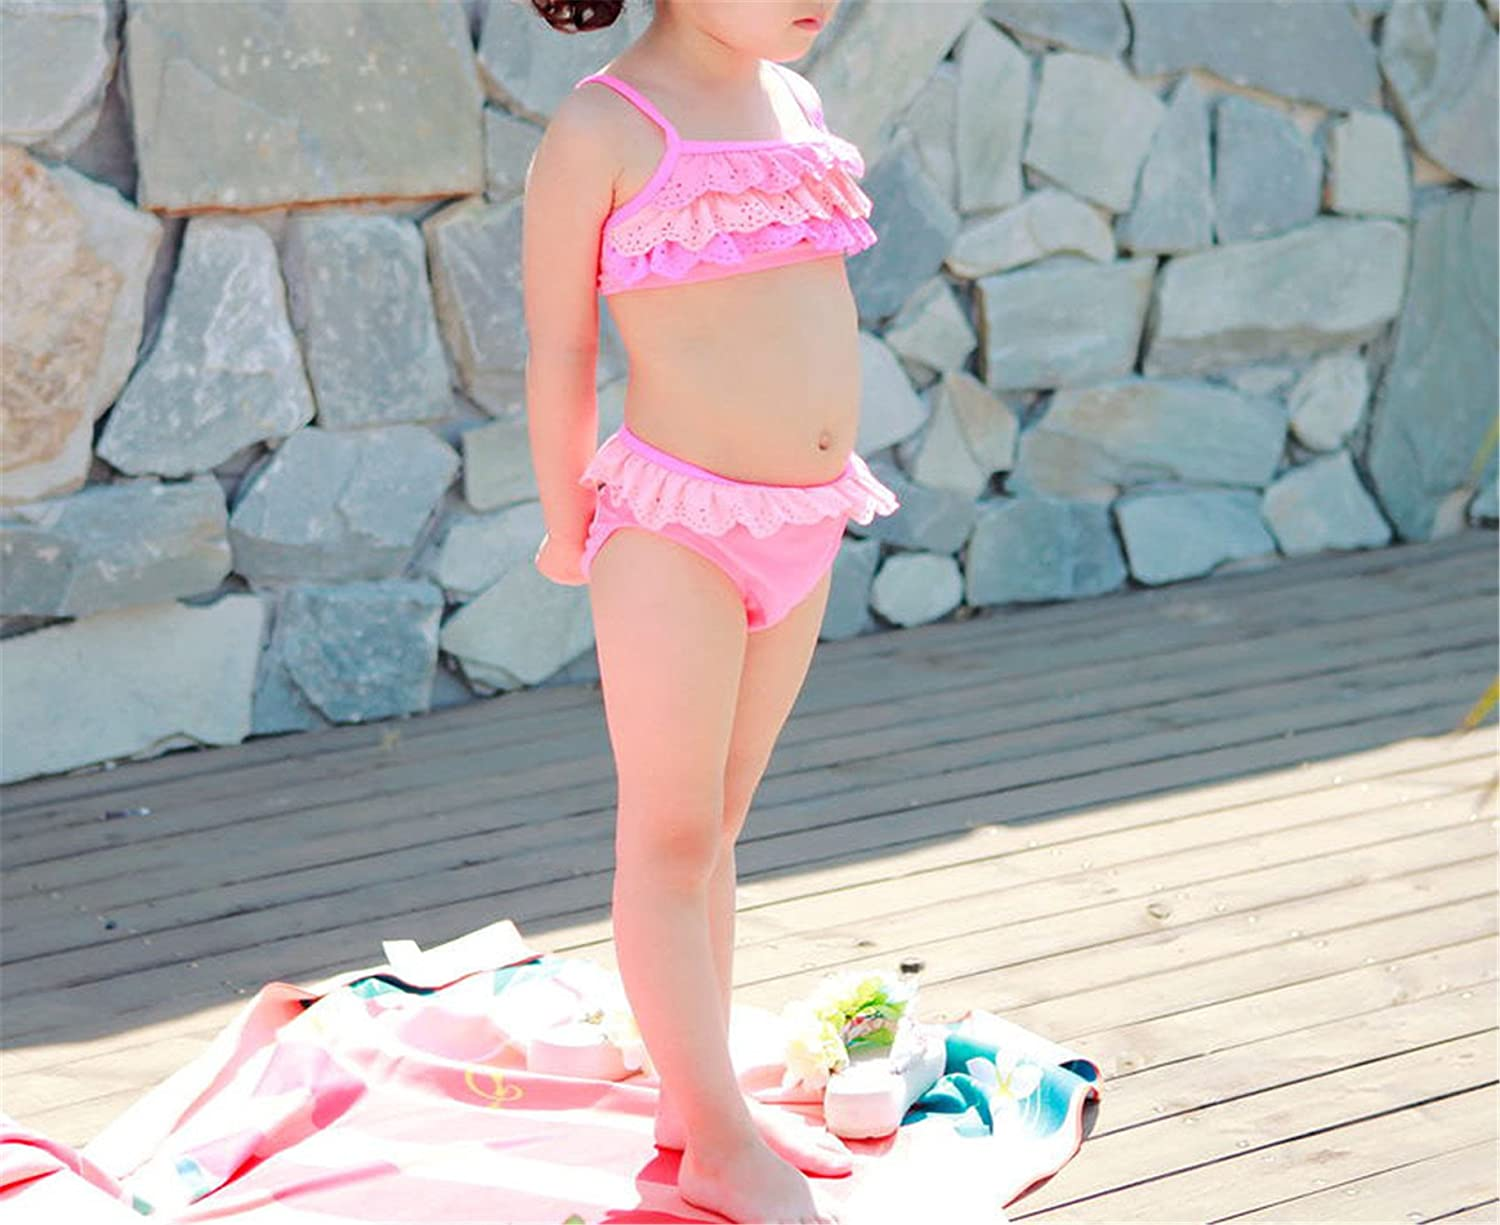 Girl Kids Two-Piece Bikinis Sets with Ruffle Mermaid Tails Swimsuit for Beach